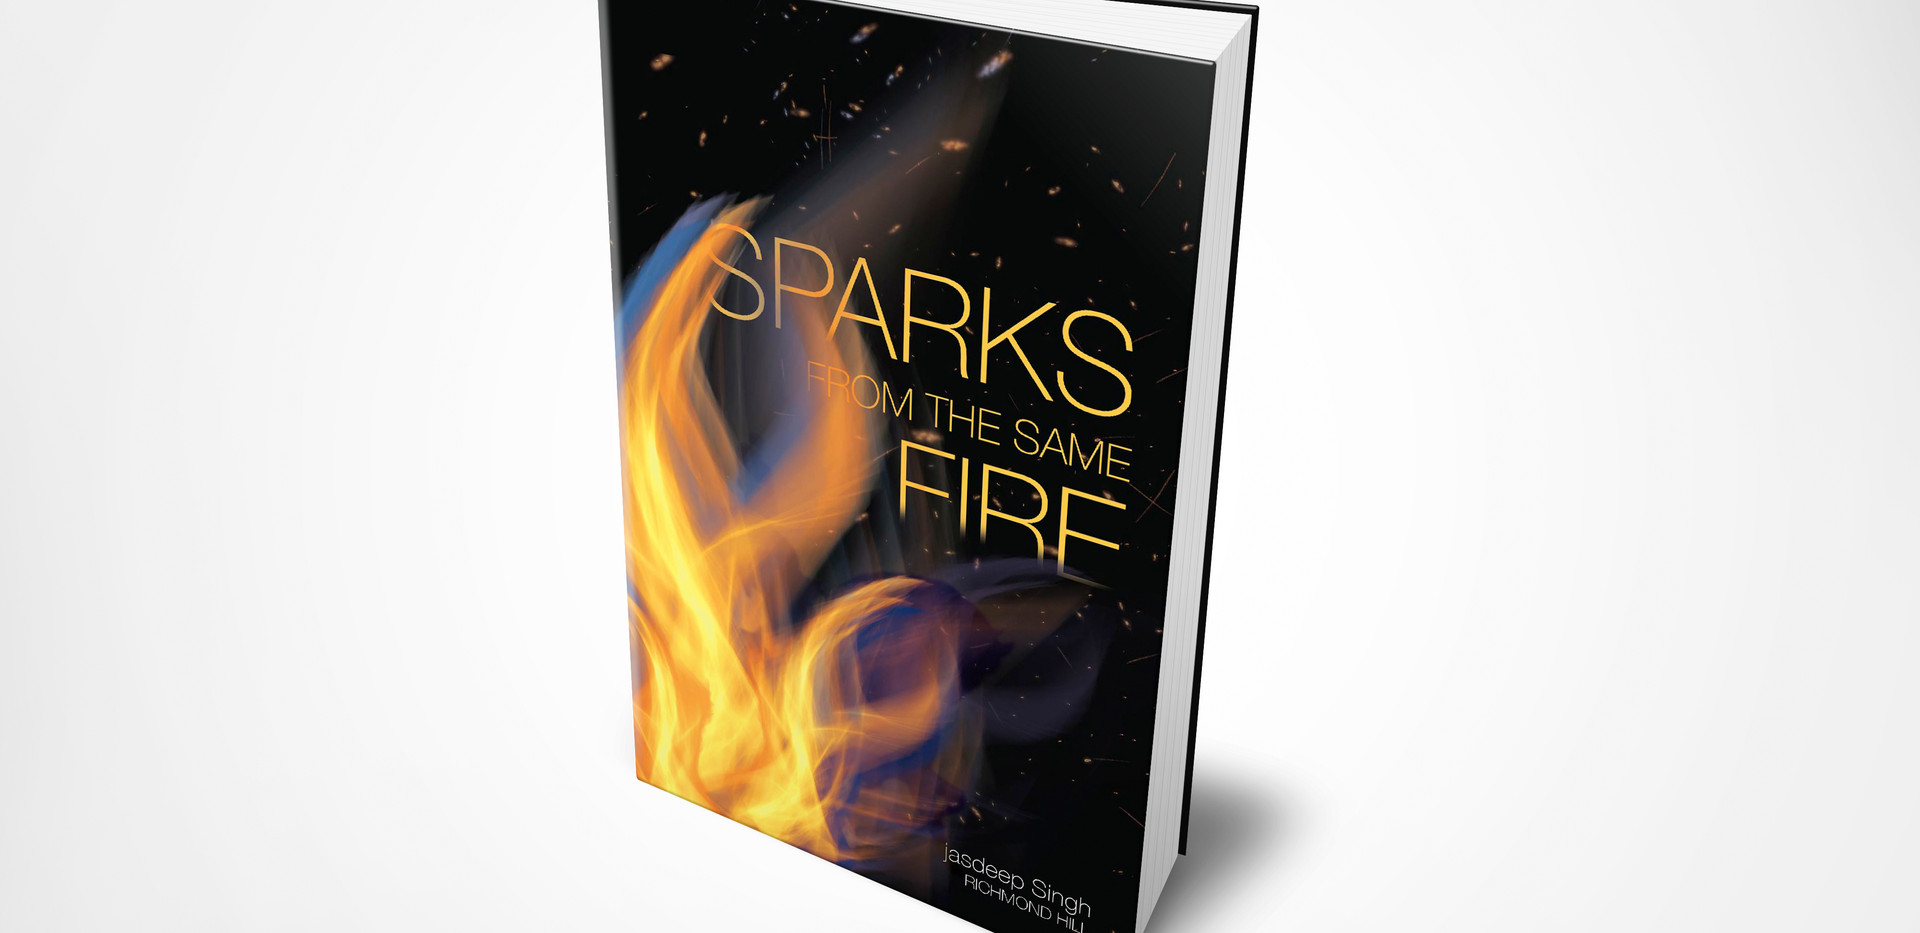 Sparks from the Same Fire